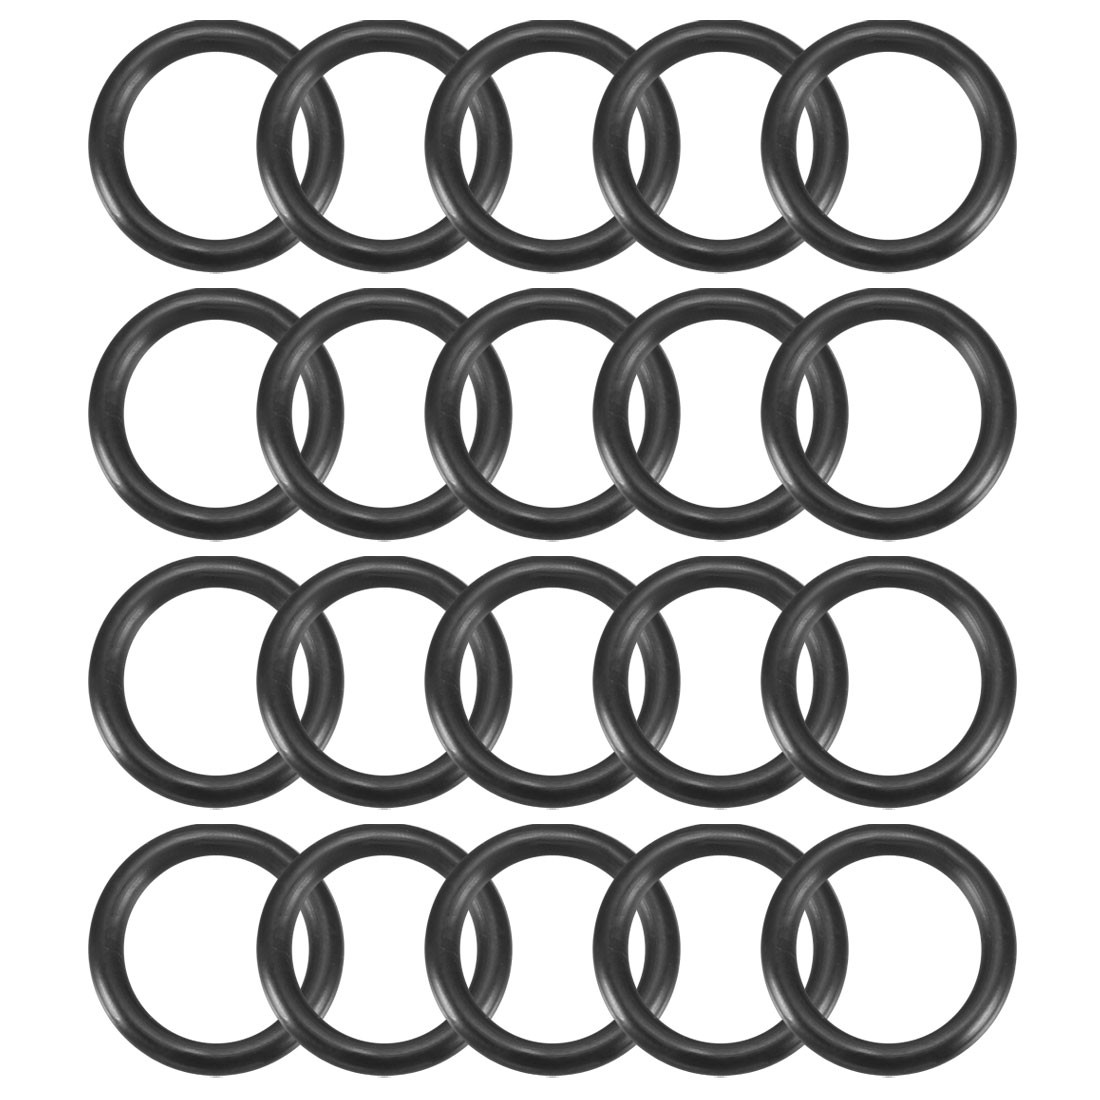 20Pcs Black 14mm Dia 2mm Thickness Nitrile Rubber O Ring NBR Sealing Grommets